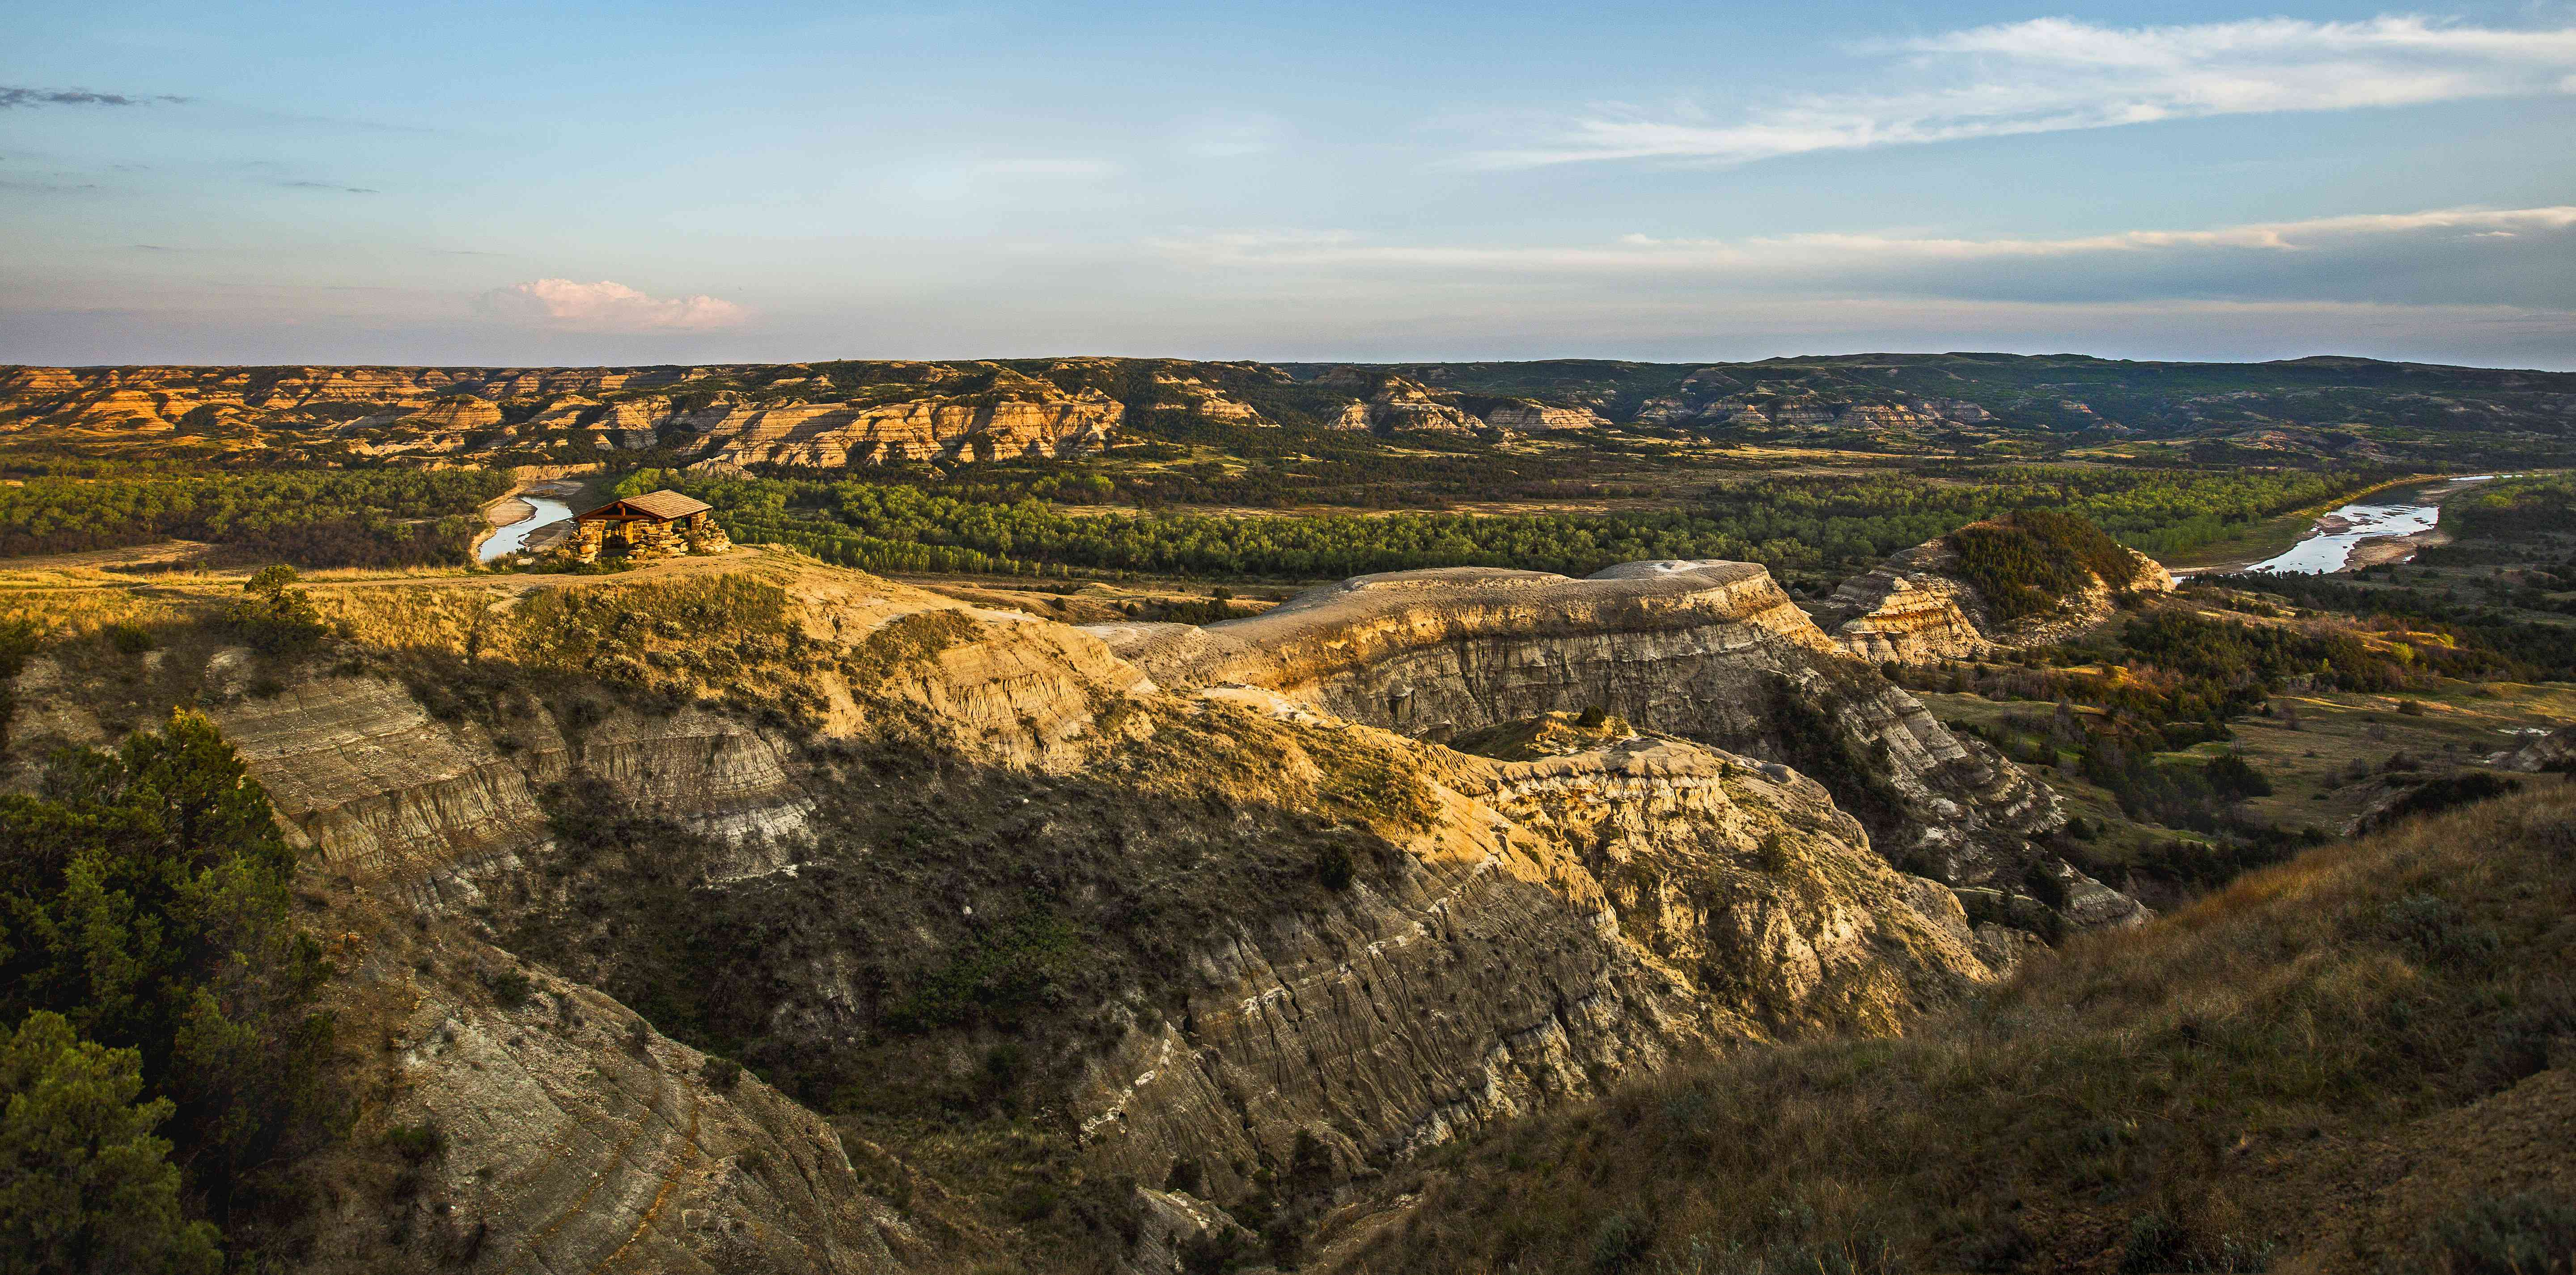 River Bend Outlook, Theodore Roosevelt National Park